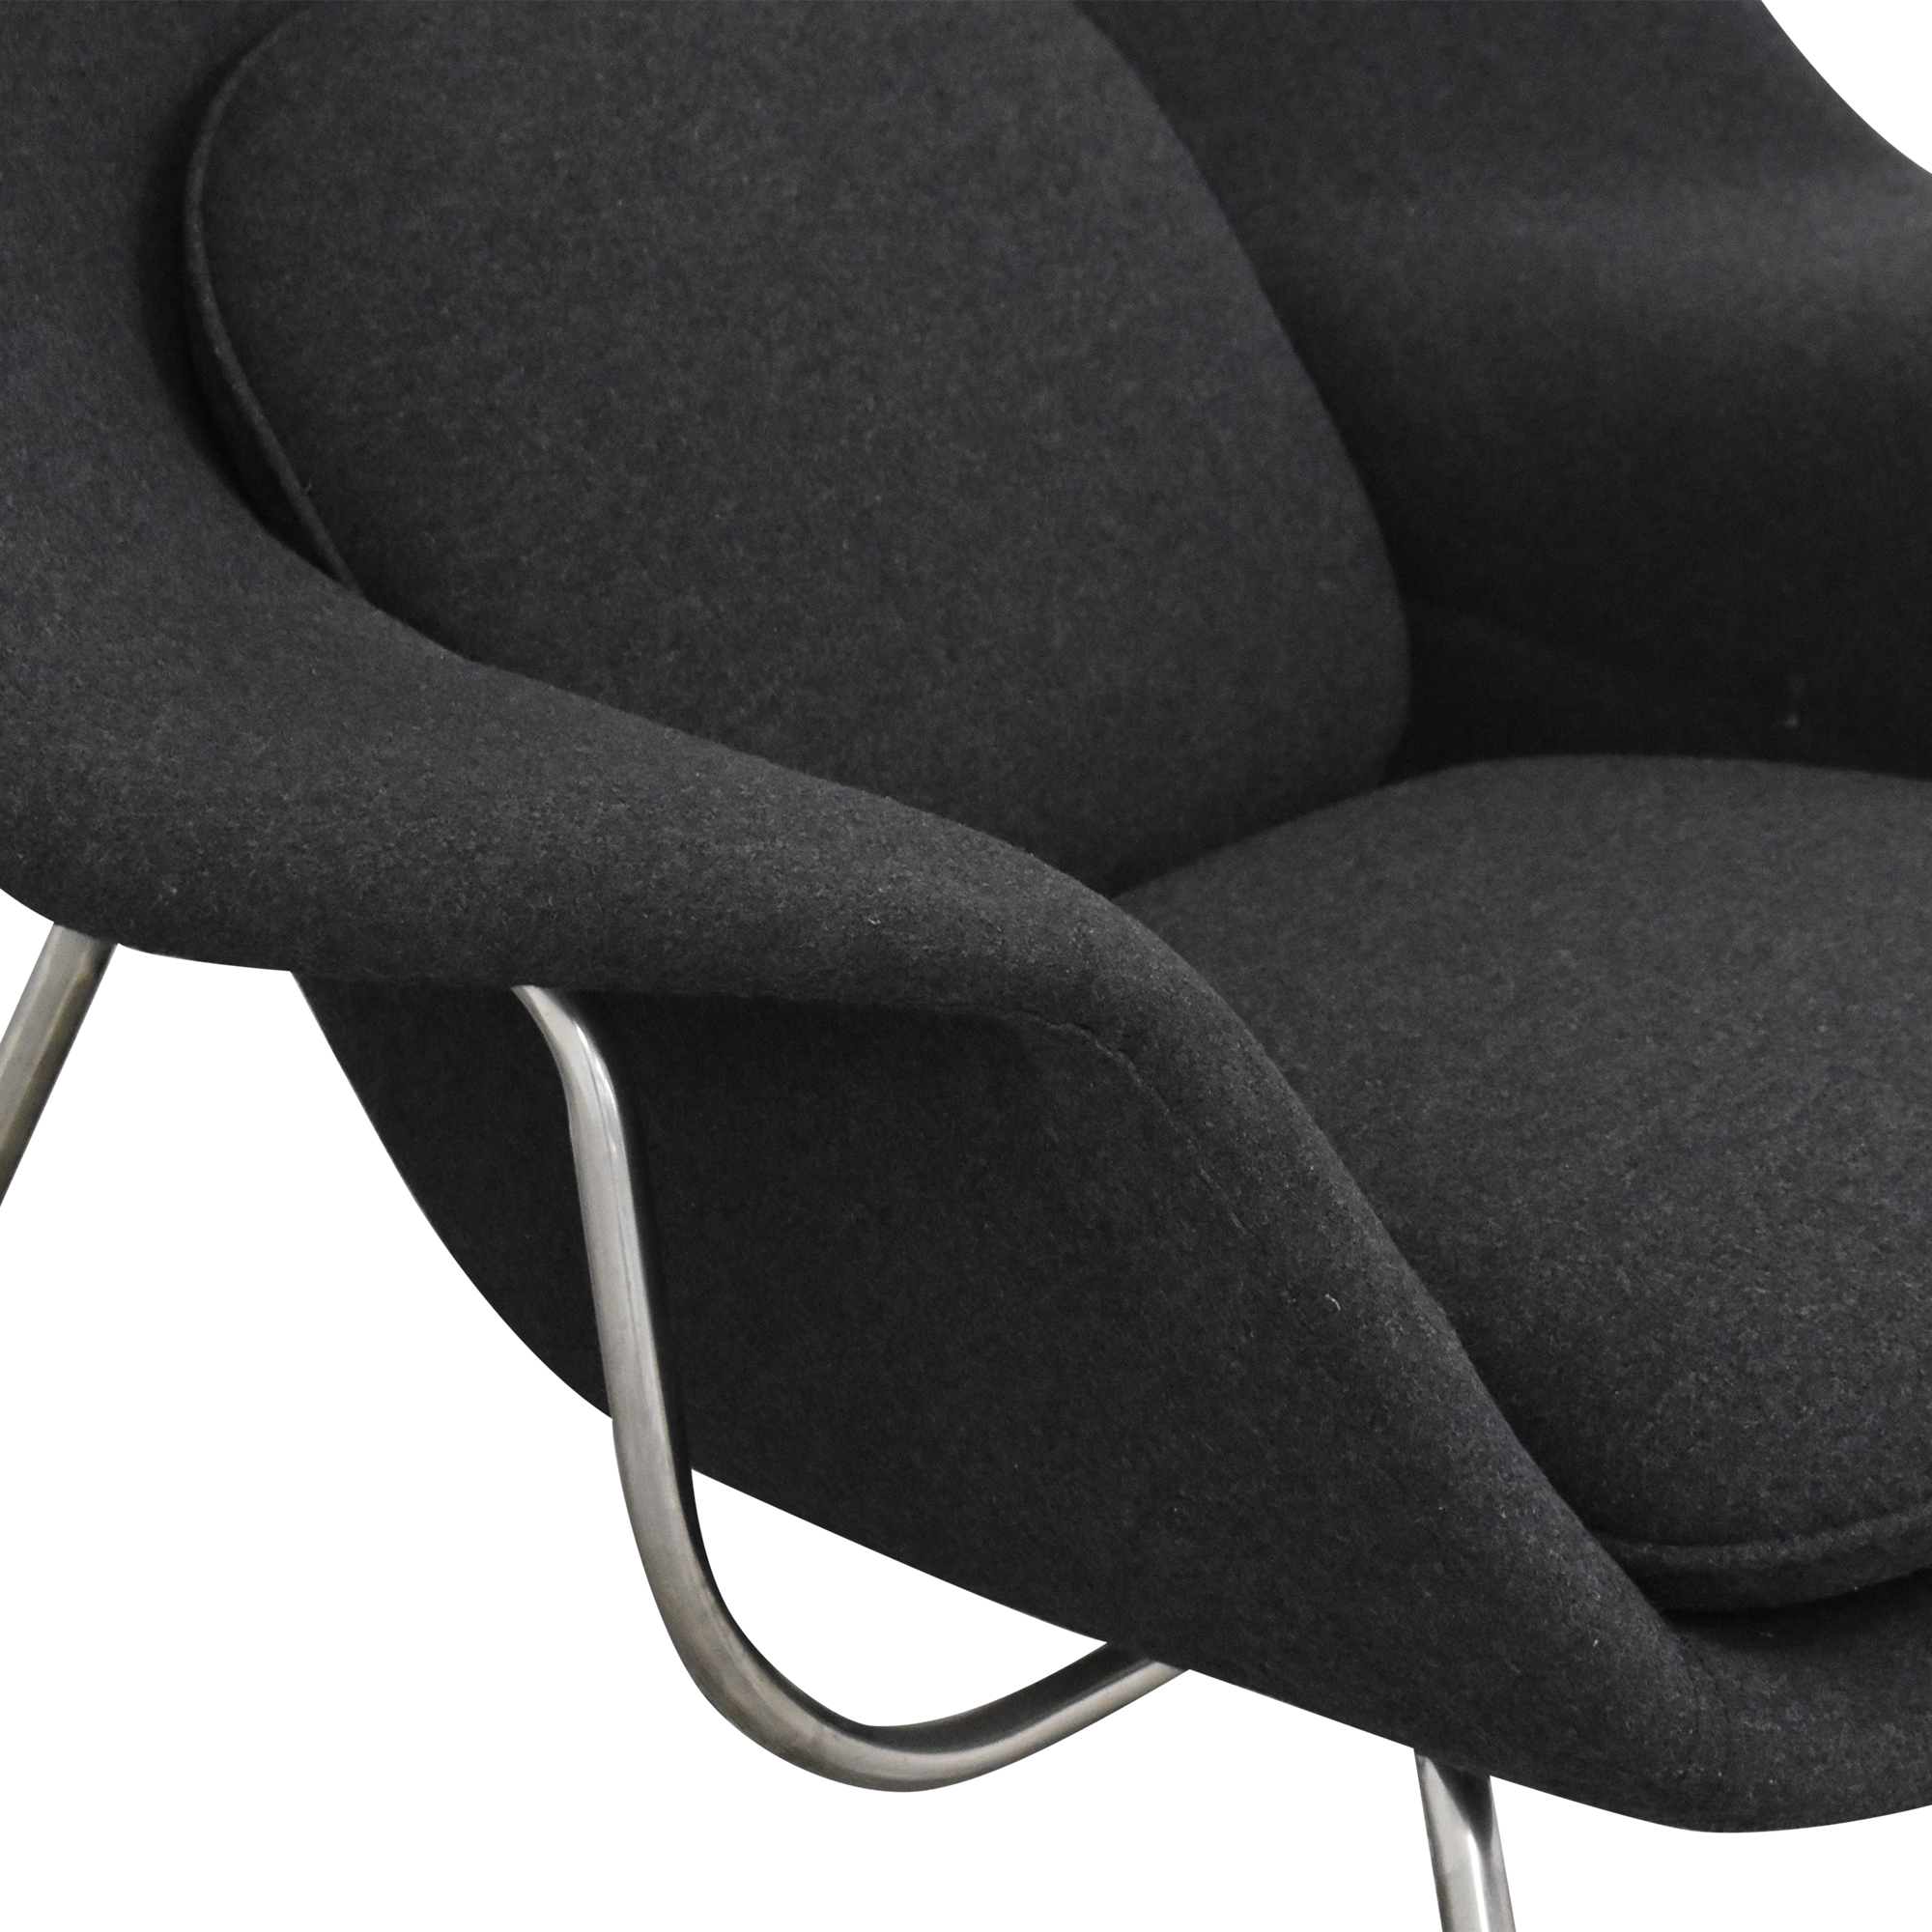 Womb-Style Replica Chair / Accent Chairs